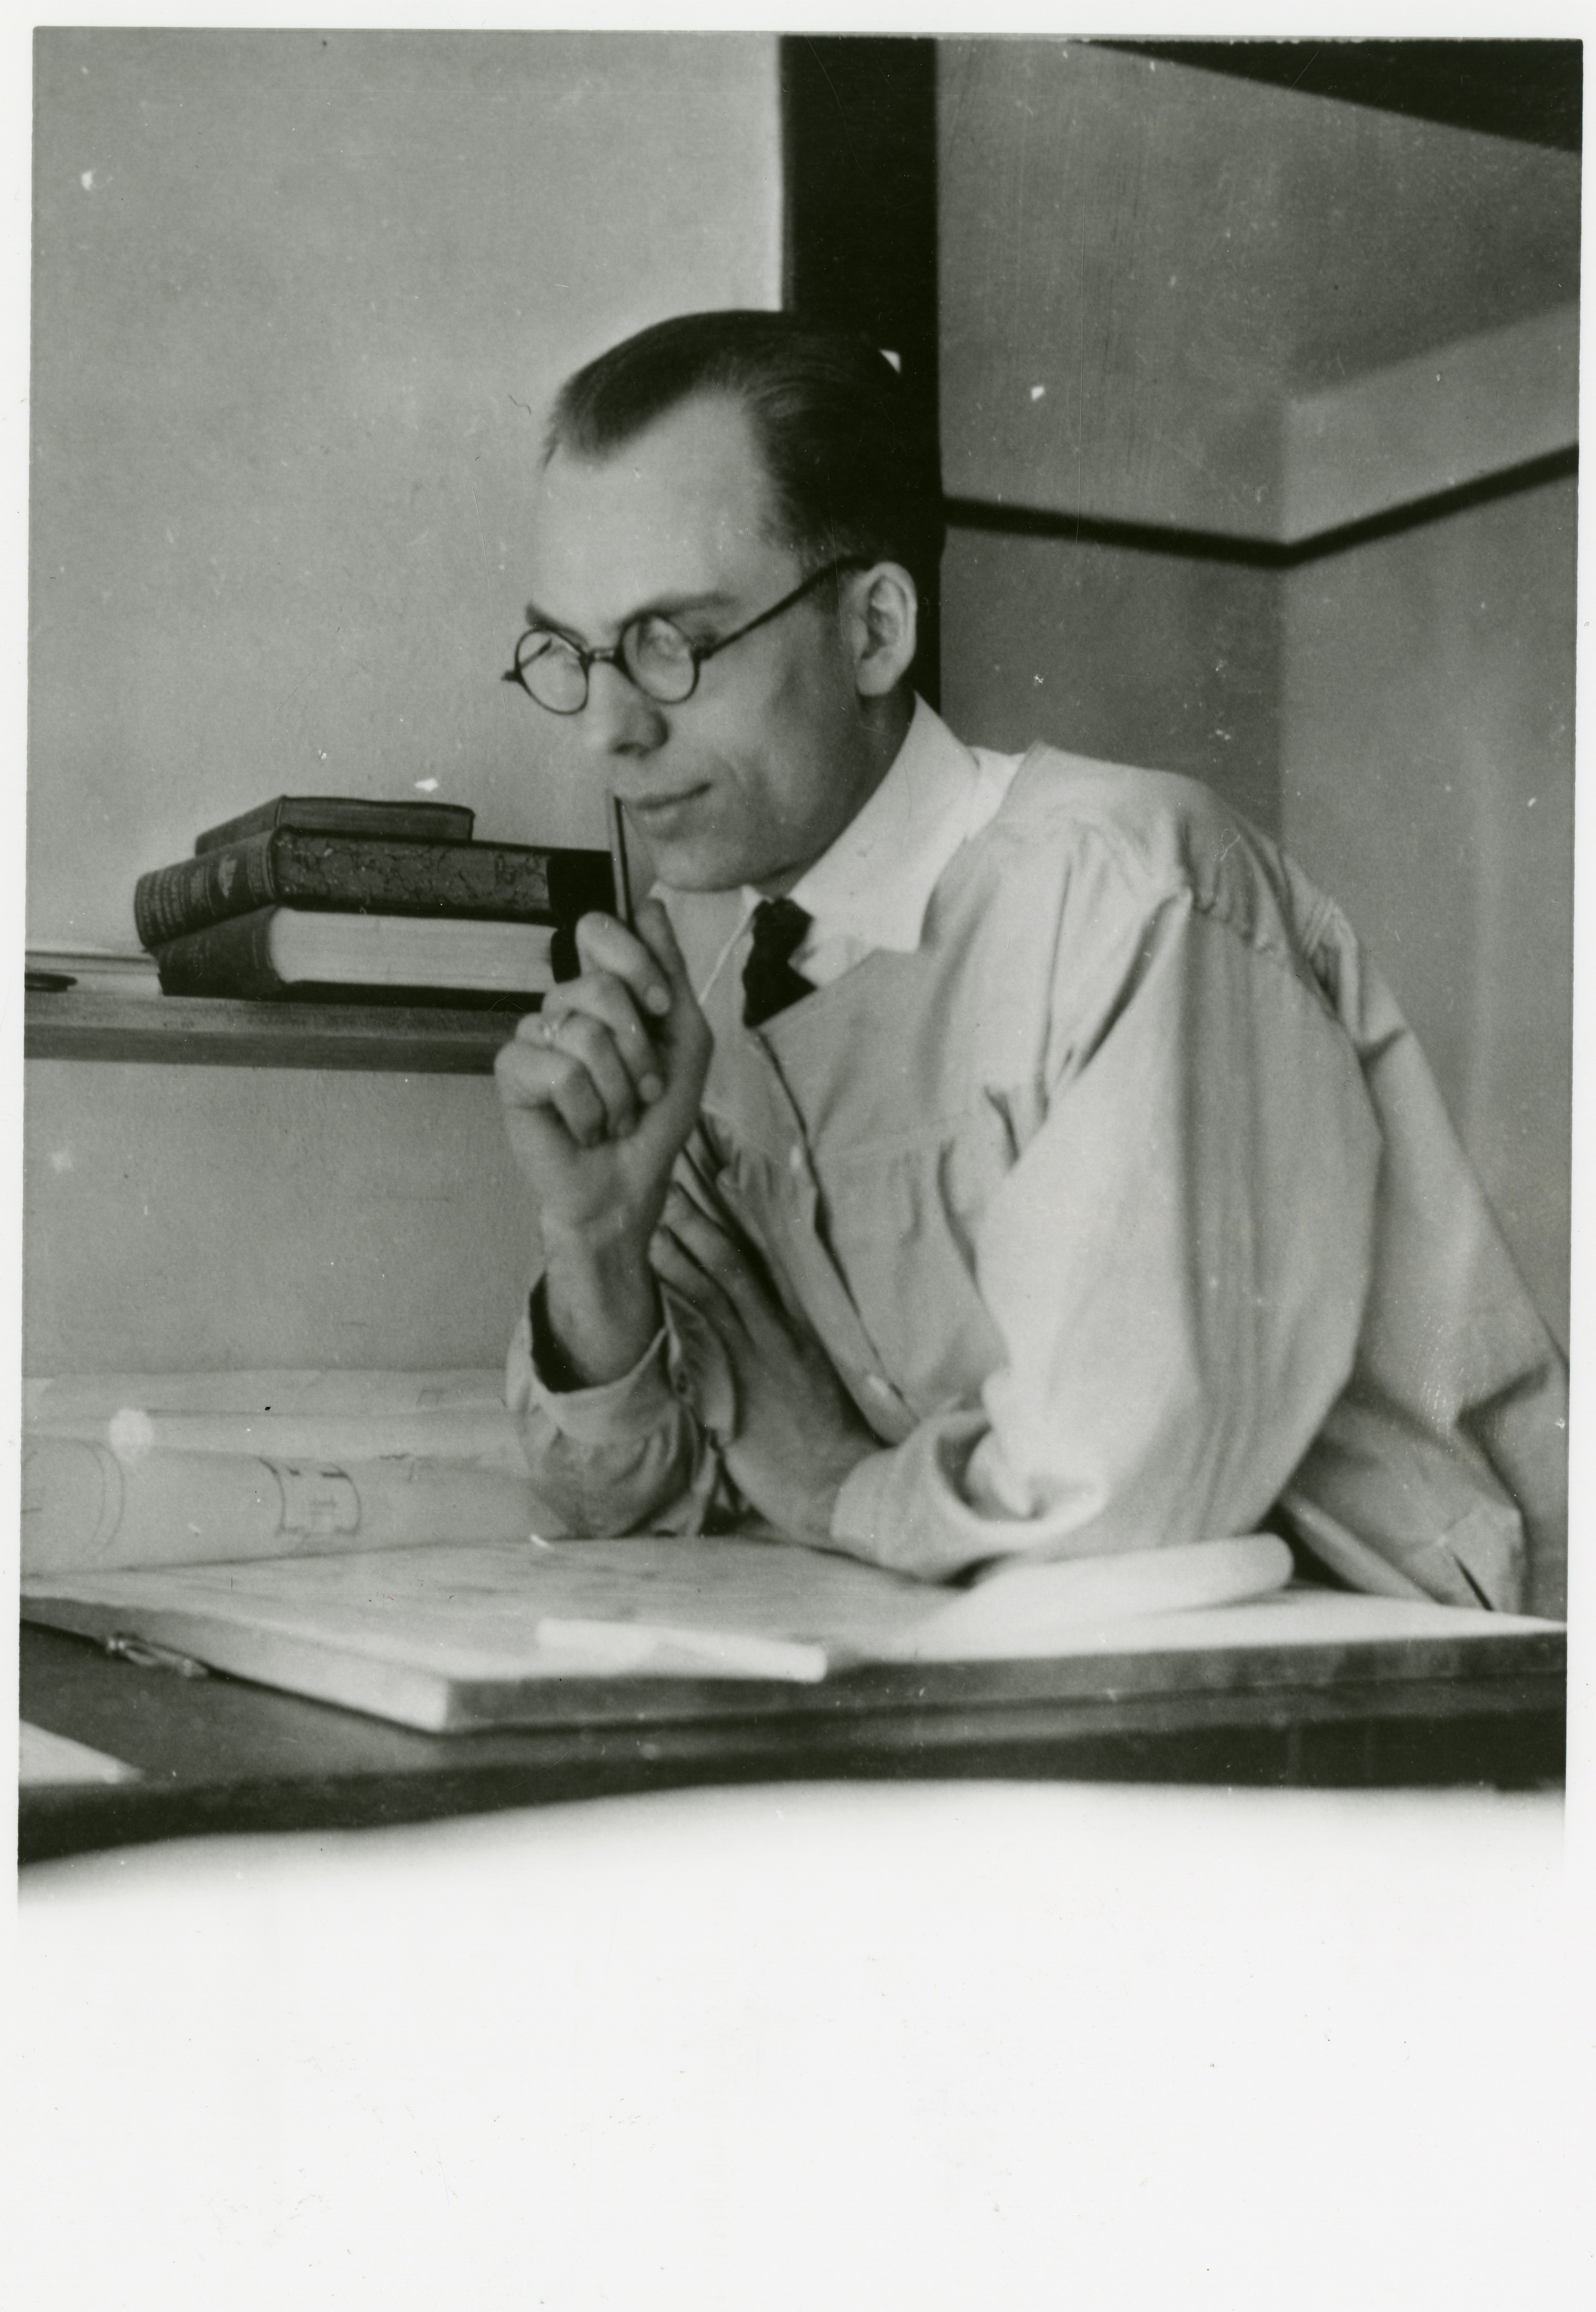 This is a picture of H. E. Kirkemo, one of the architects who designed the Wilma. He and his wife, Lillian, lived in an apartment in the Wilma during their first year of marriage. (Photo undated)